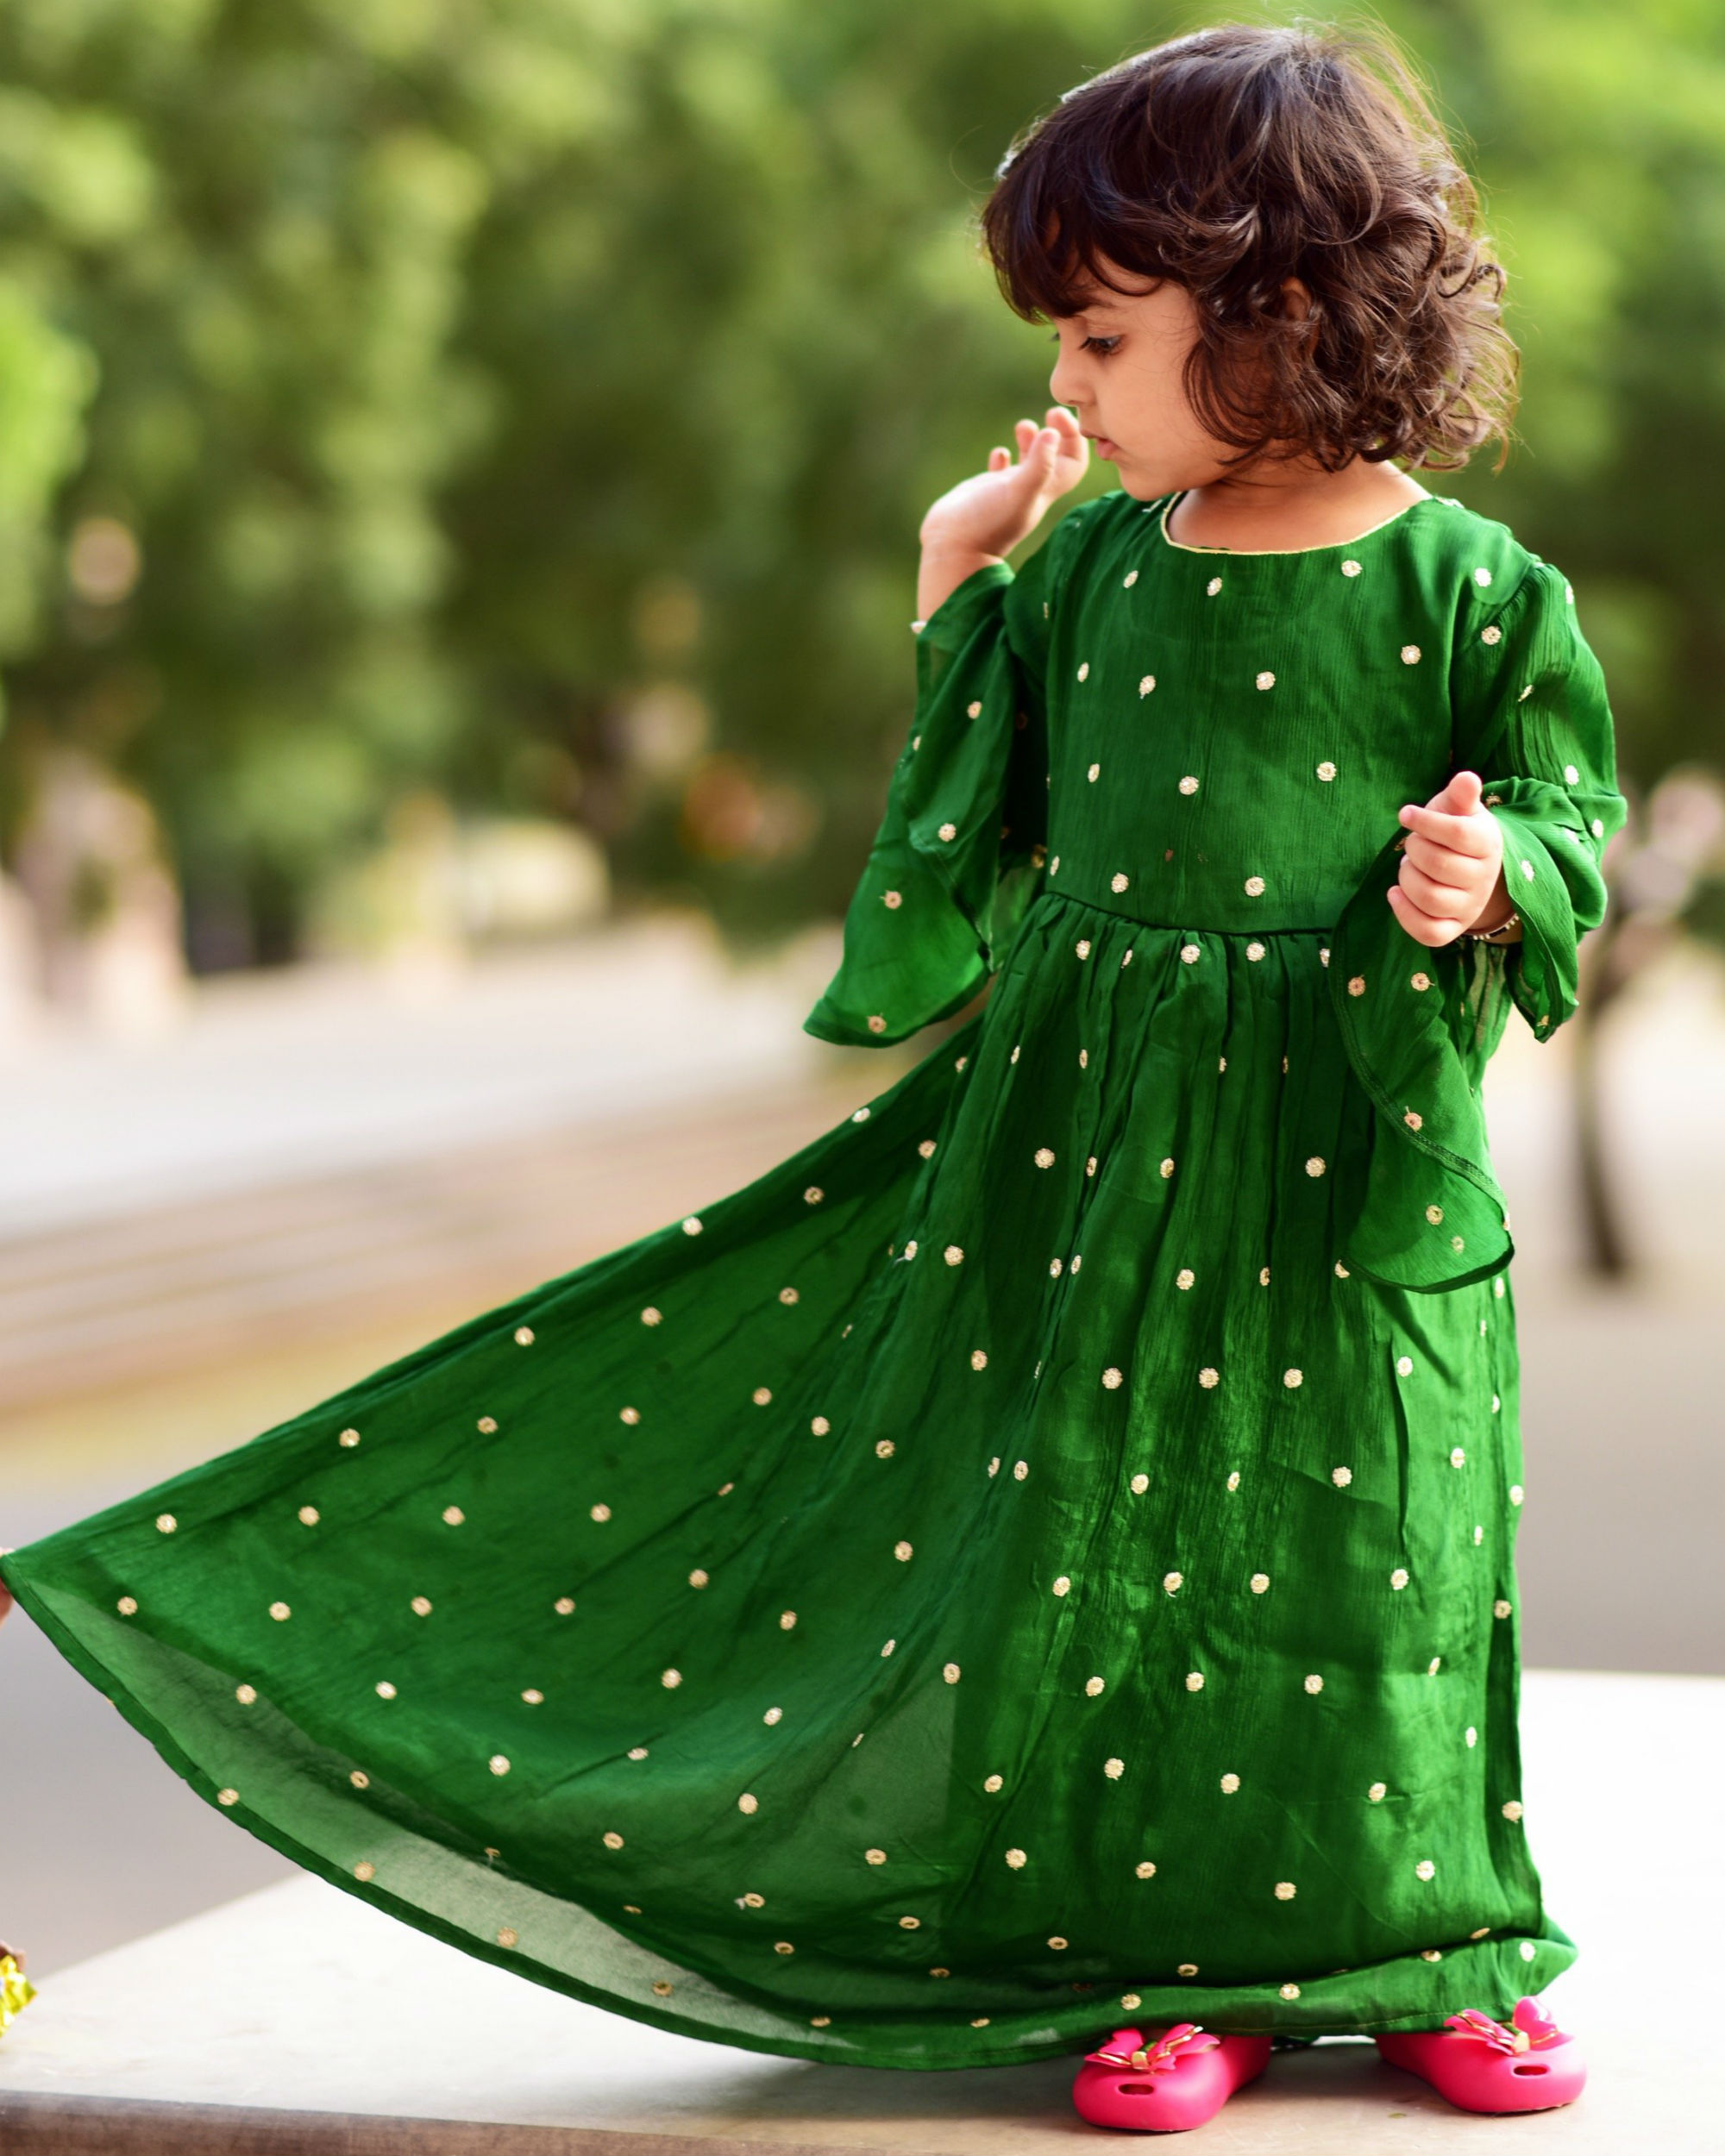 Green polka dress with bell sleeves